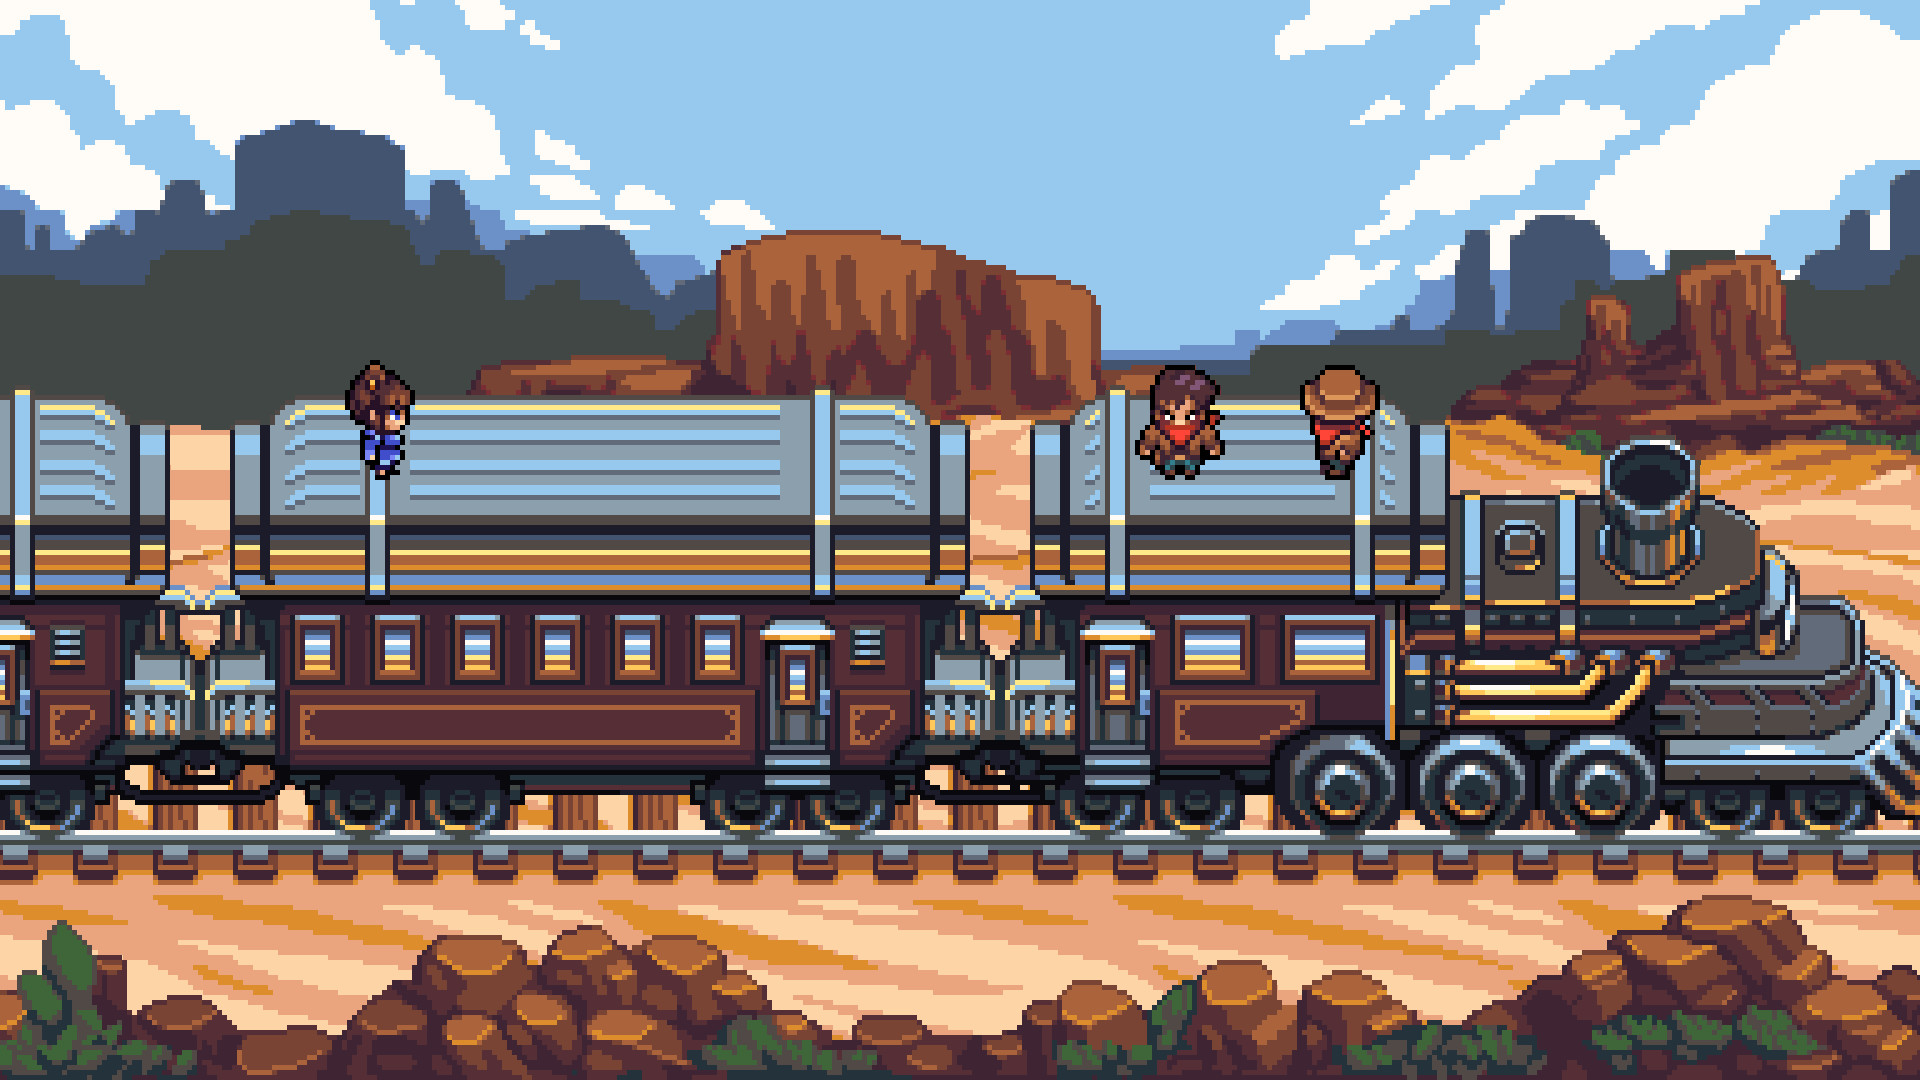 Pixel art Quartet screenshot showing characters on top of an Old West-style train.